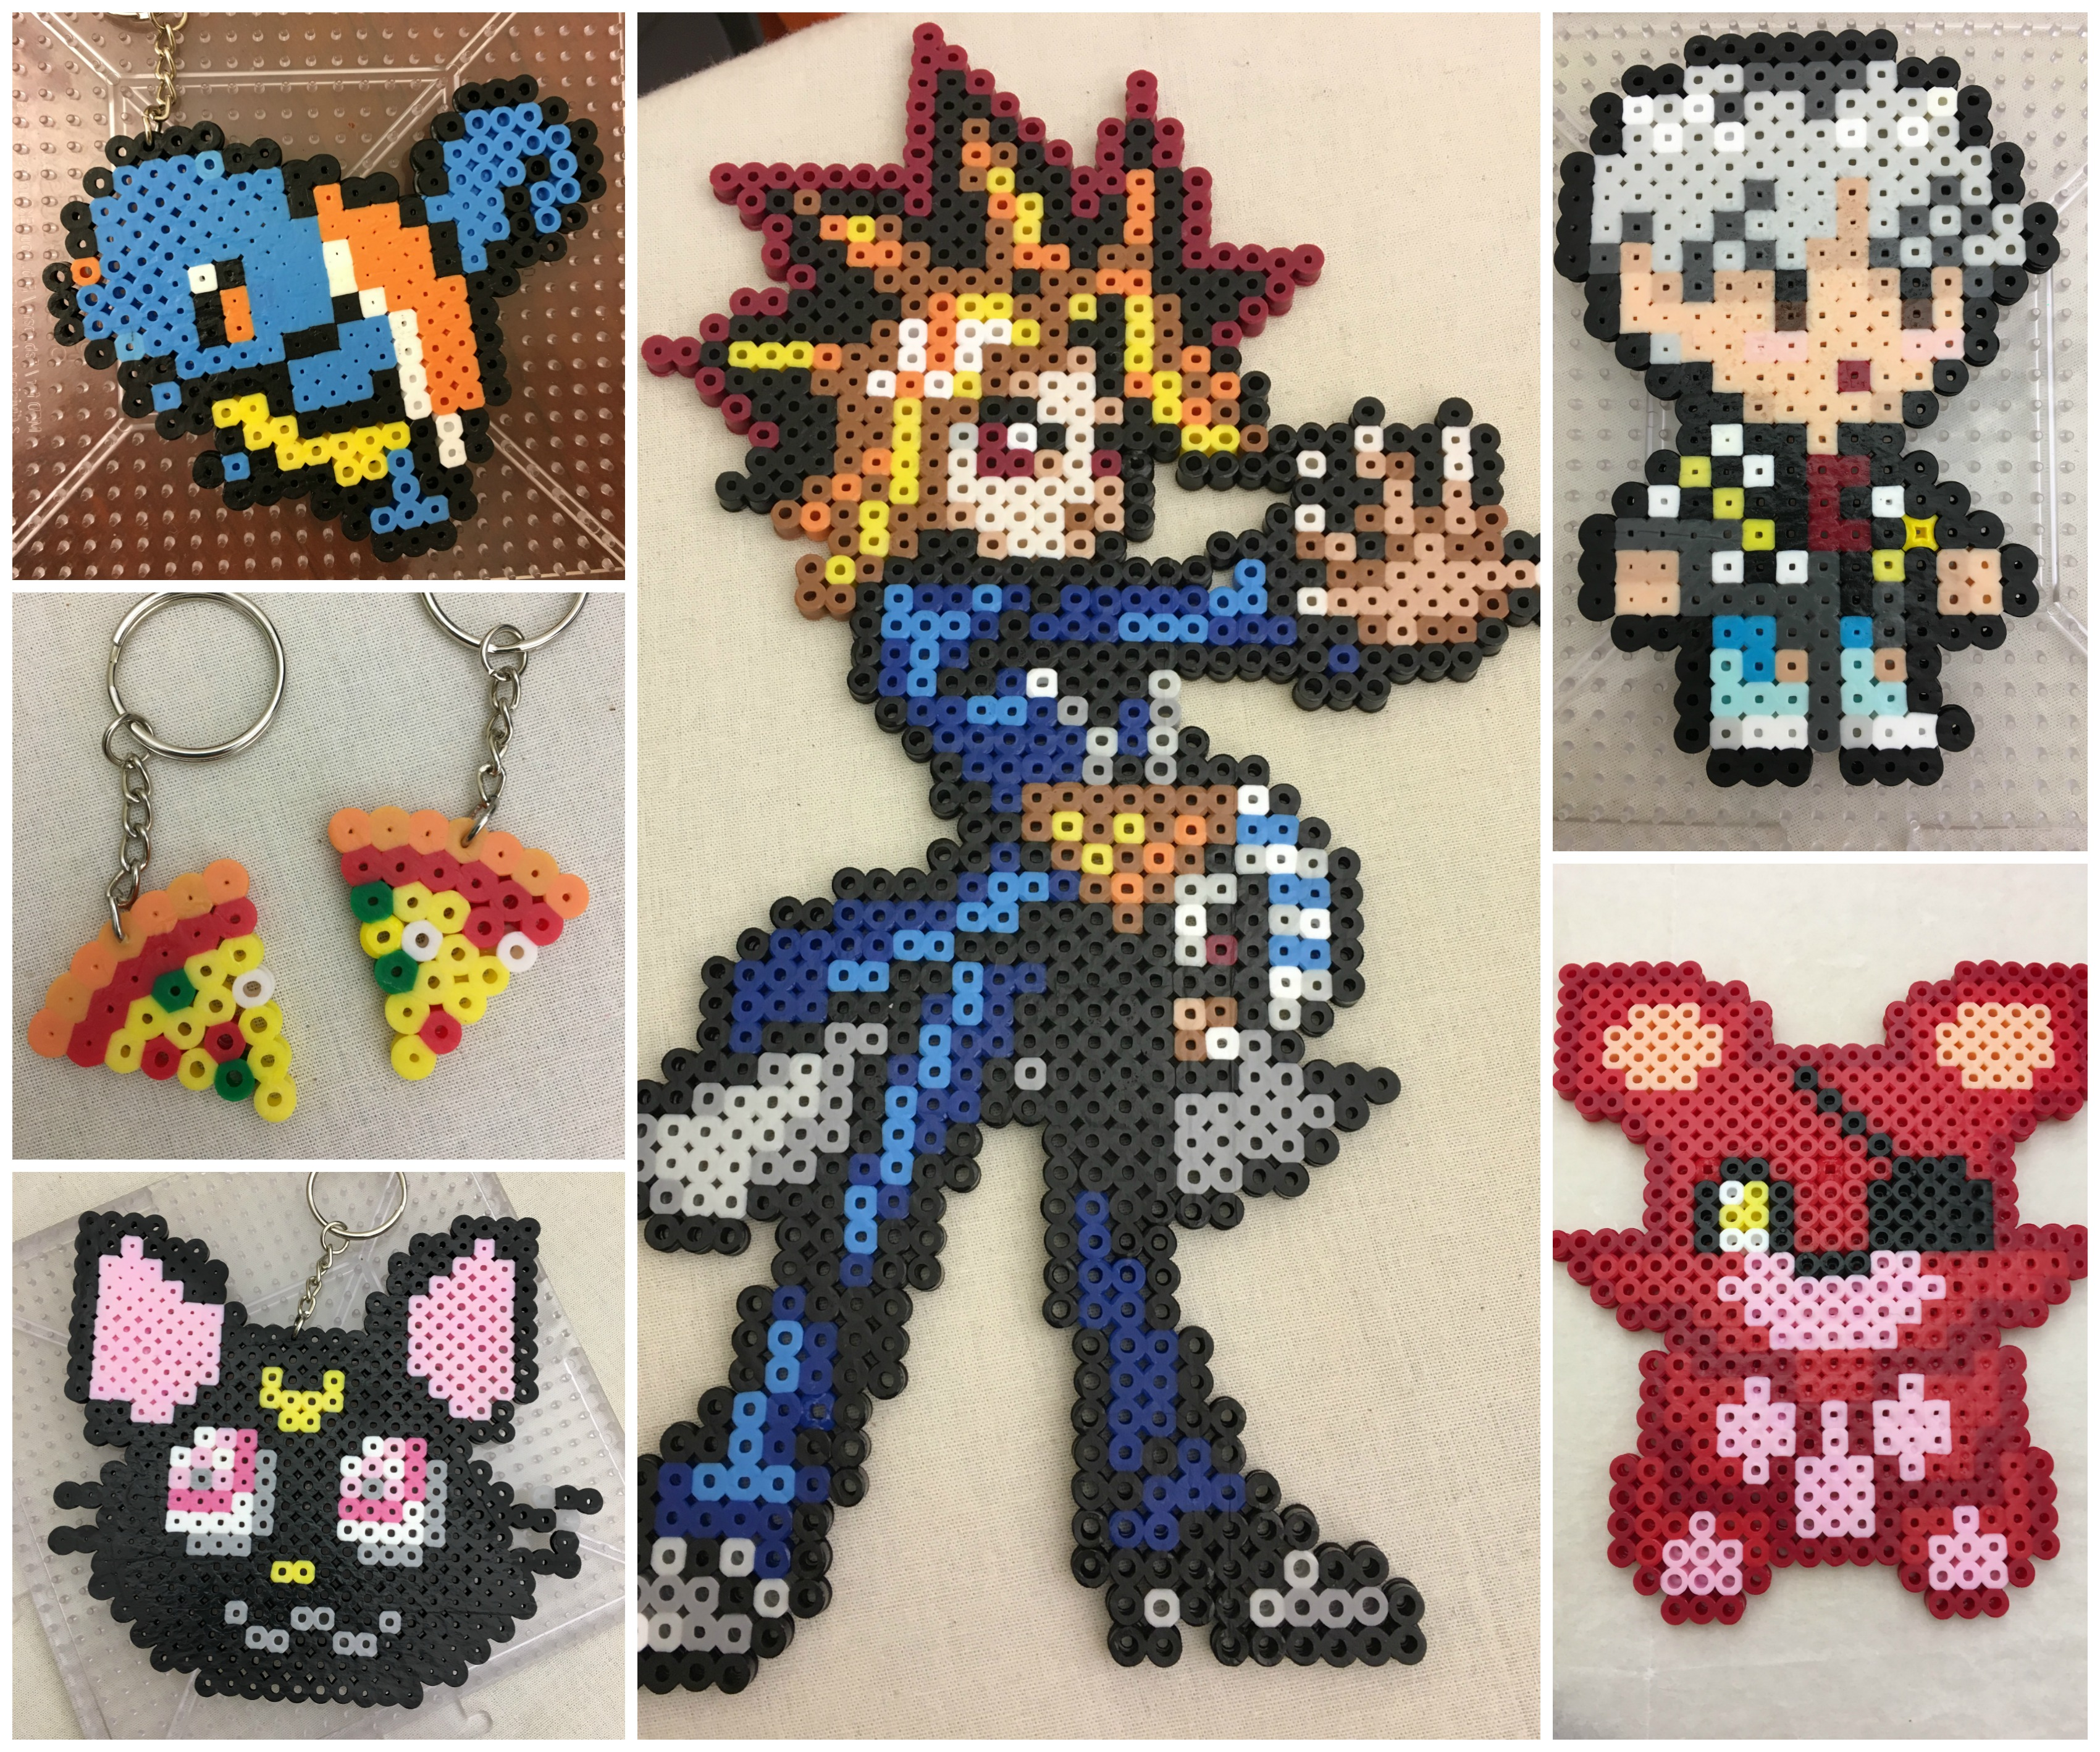 Collage of pixel art projects made out of perler beads